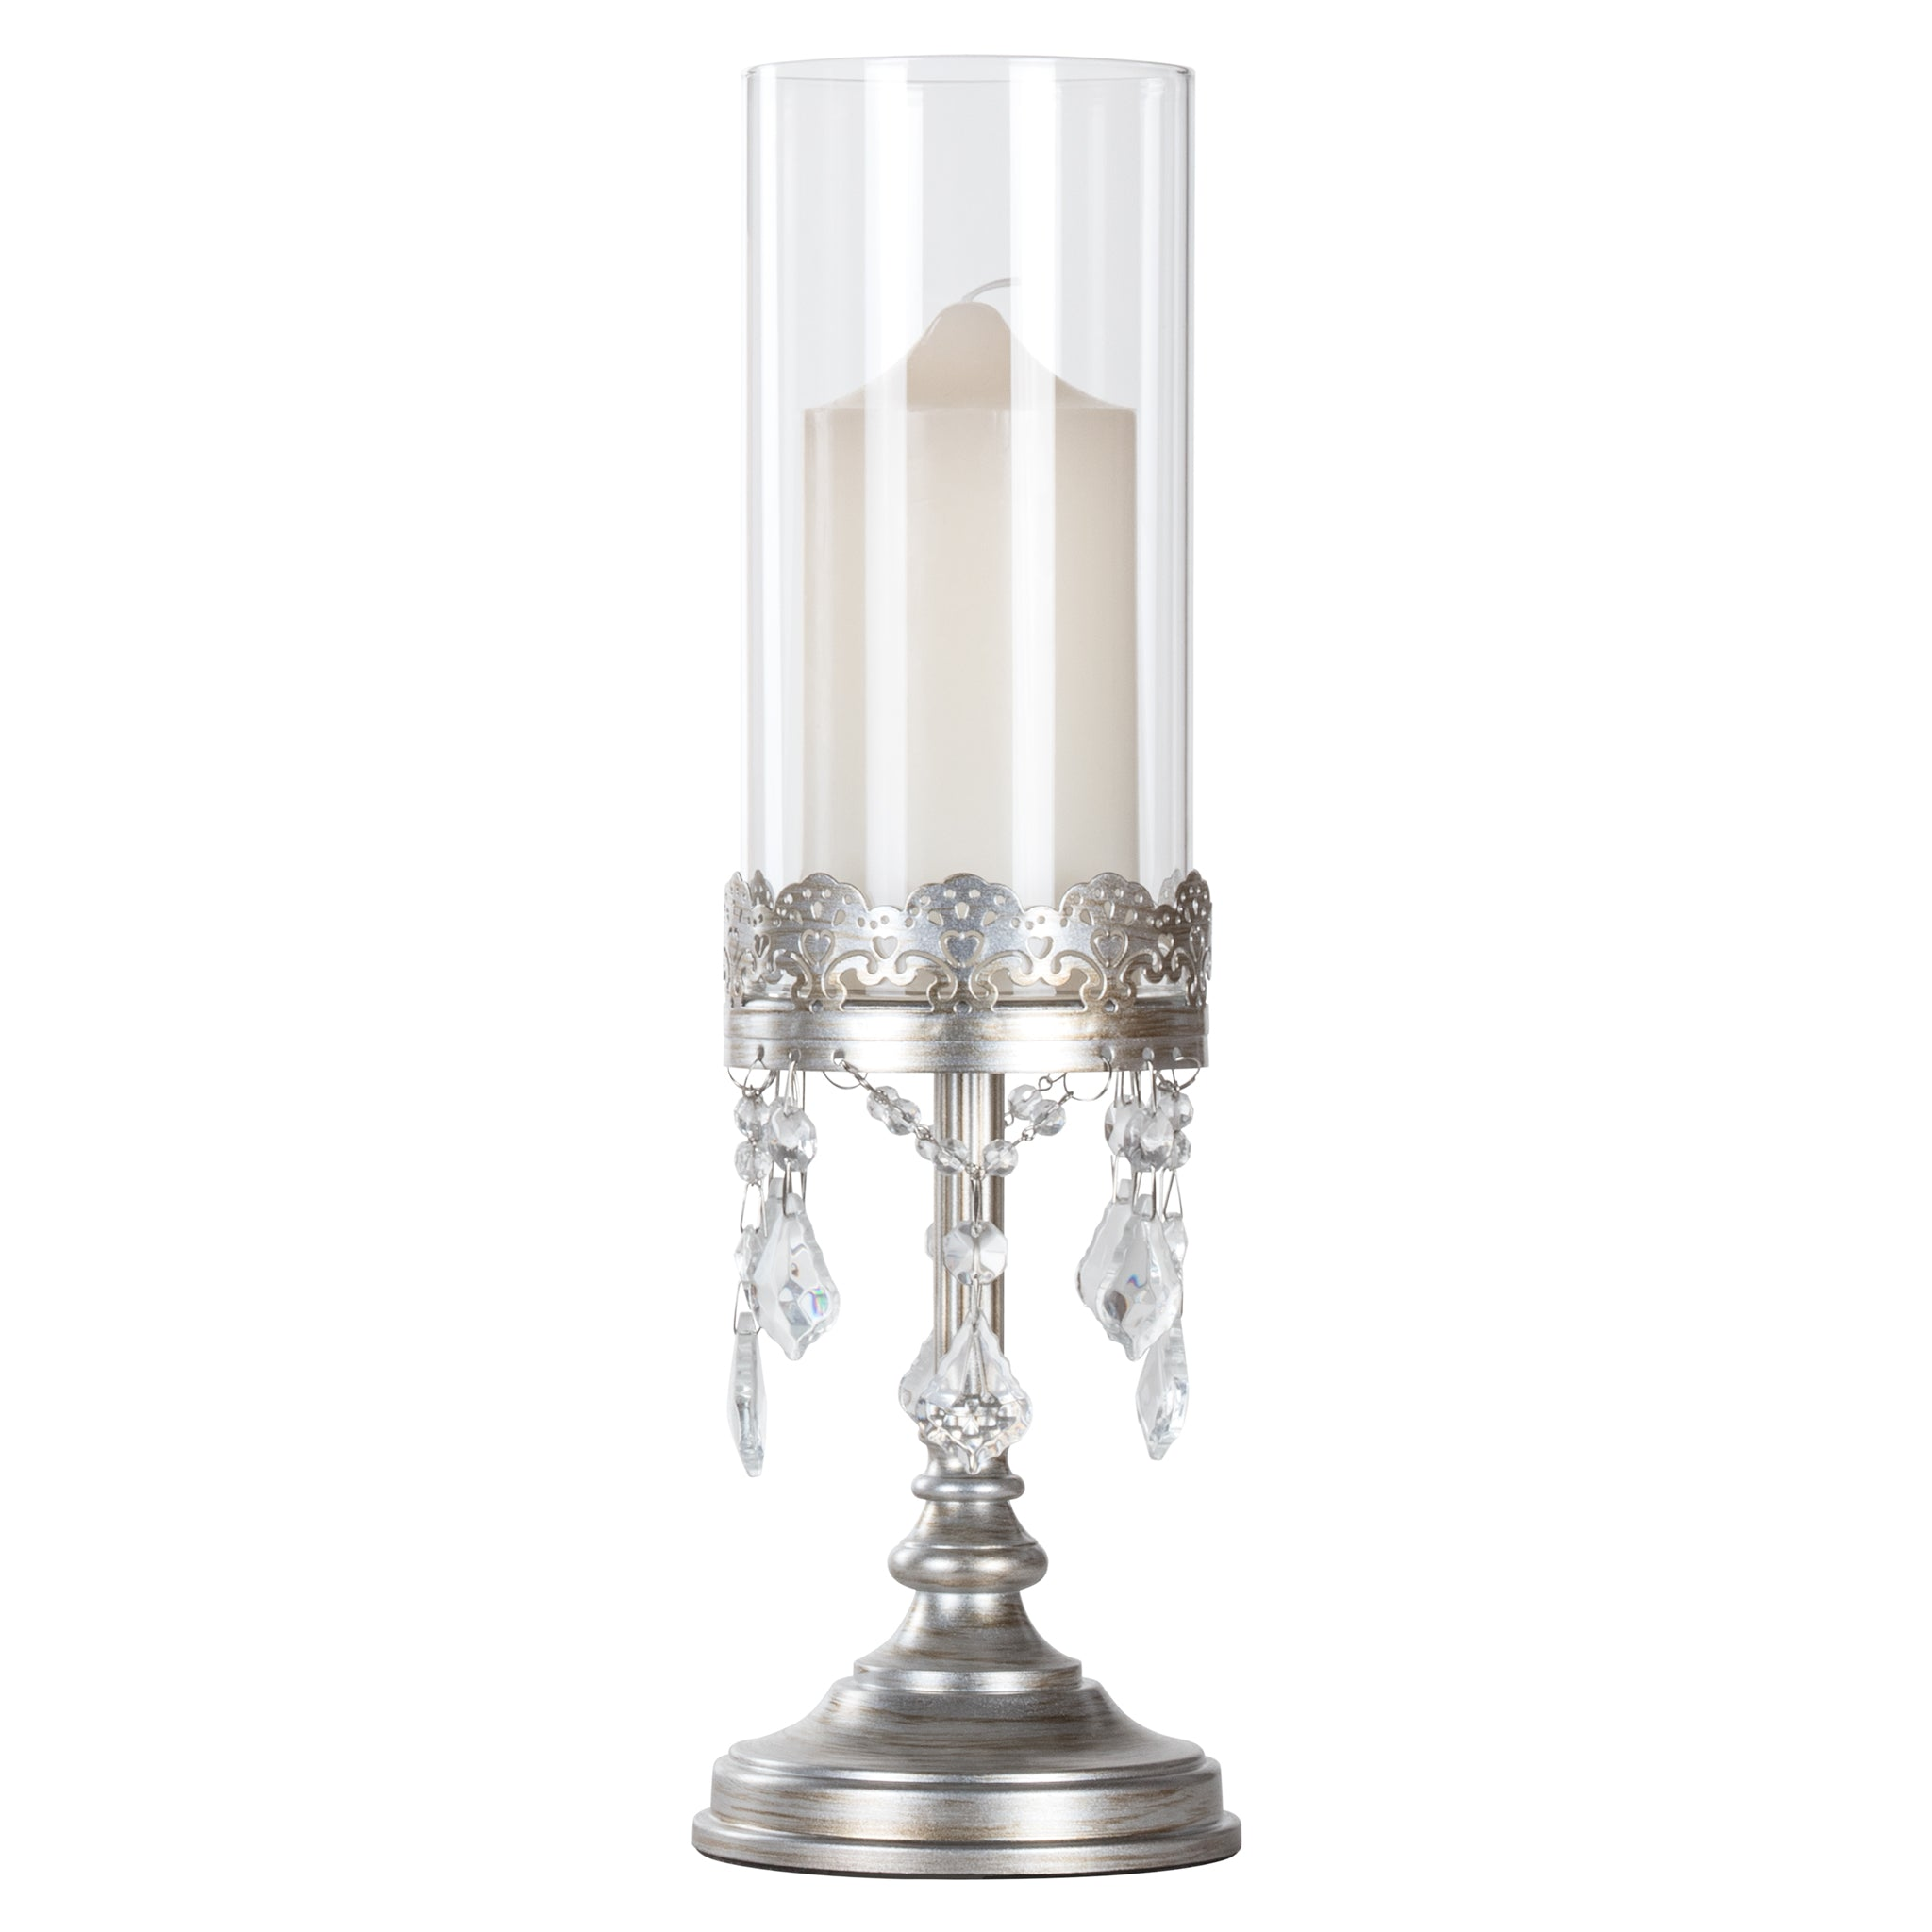 Amalfi Decor 15 Inch Tall Crystal-Draped Glass Hurricane Candle Holder (Silver) | H | Stainless Steel Frame with Glass Crystals